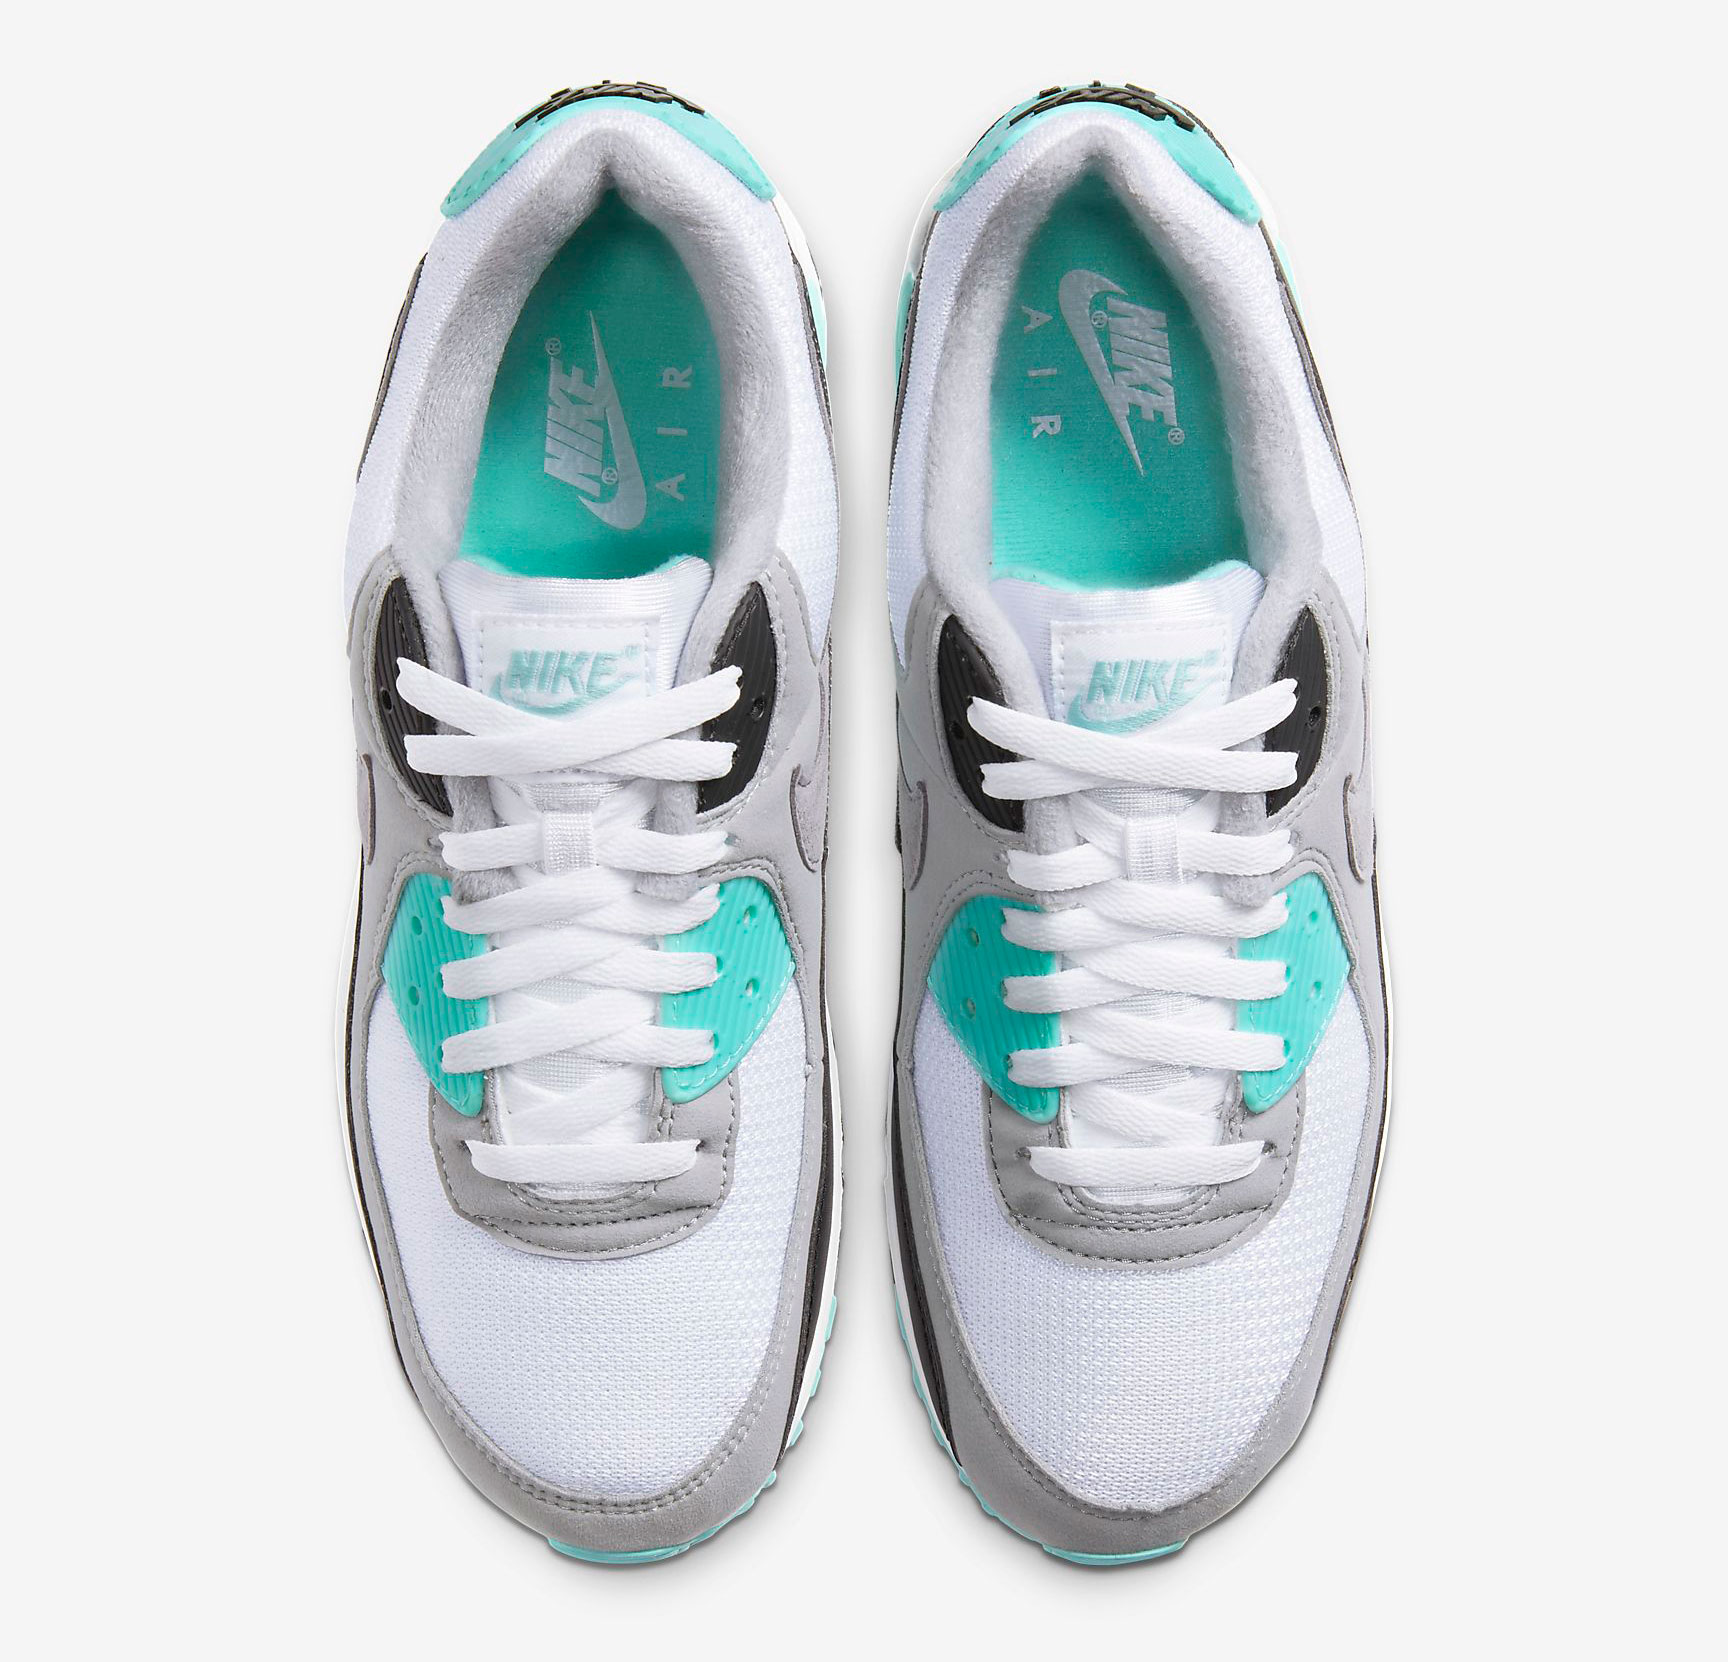 nike-air-max-90-hyper-turquoise-release-date-price-4